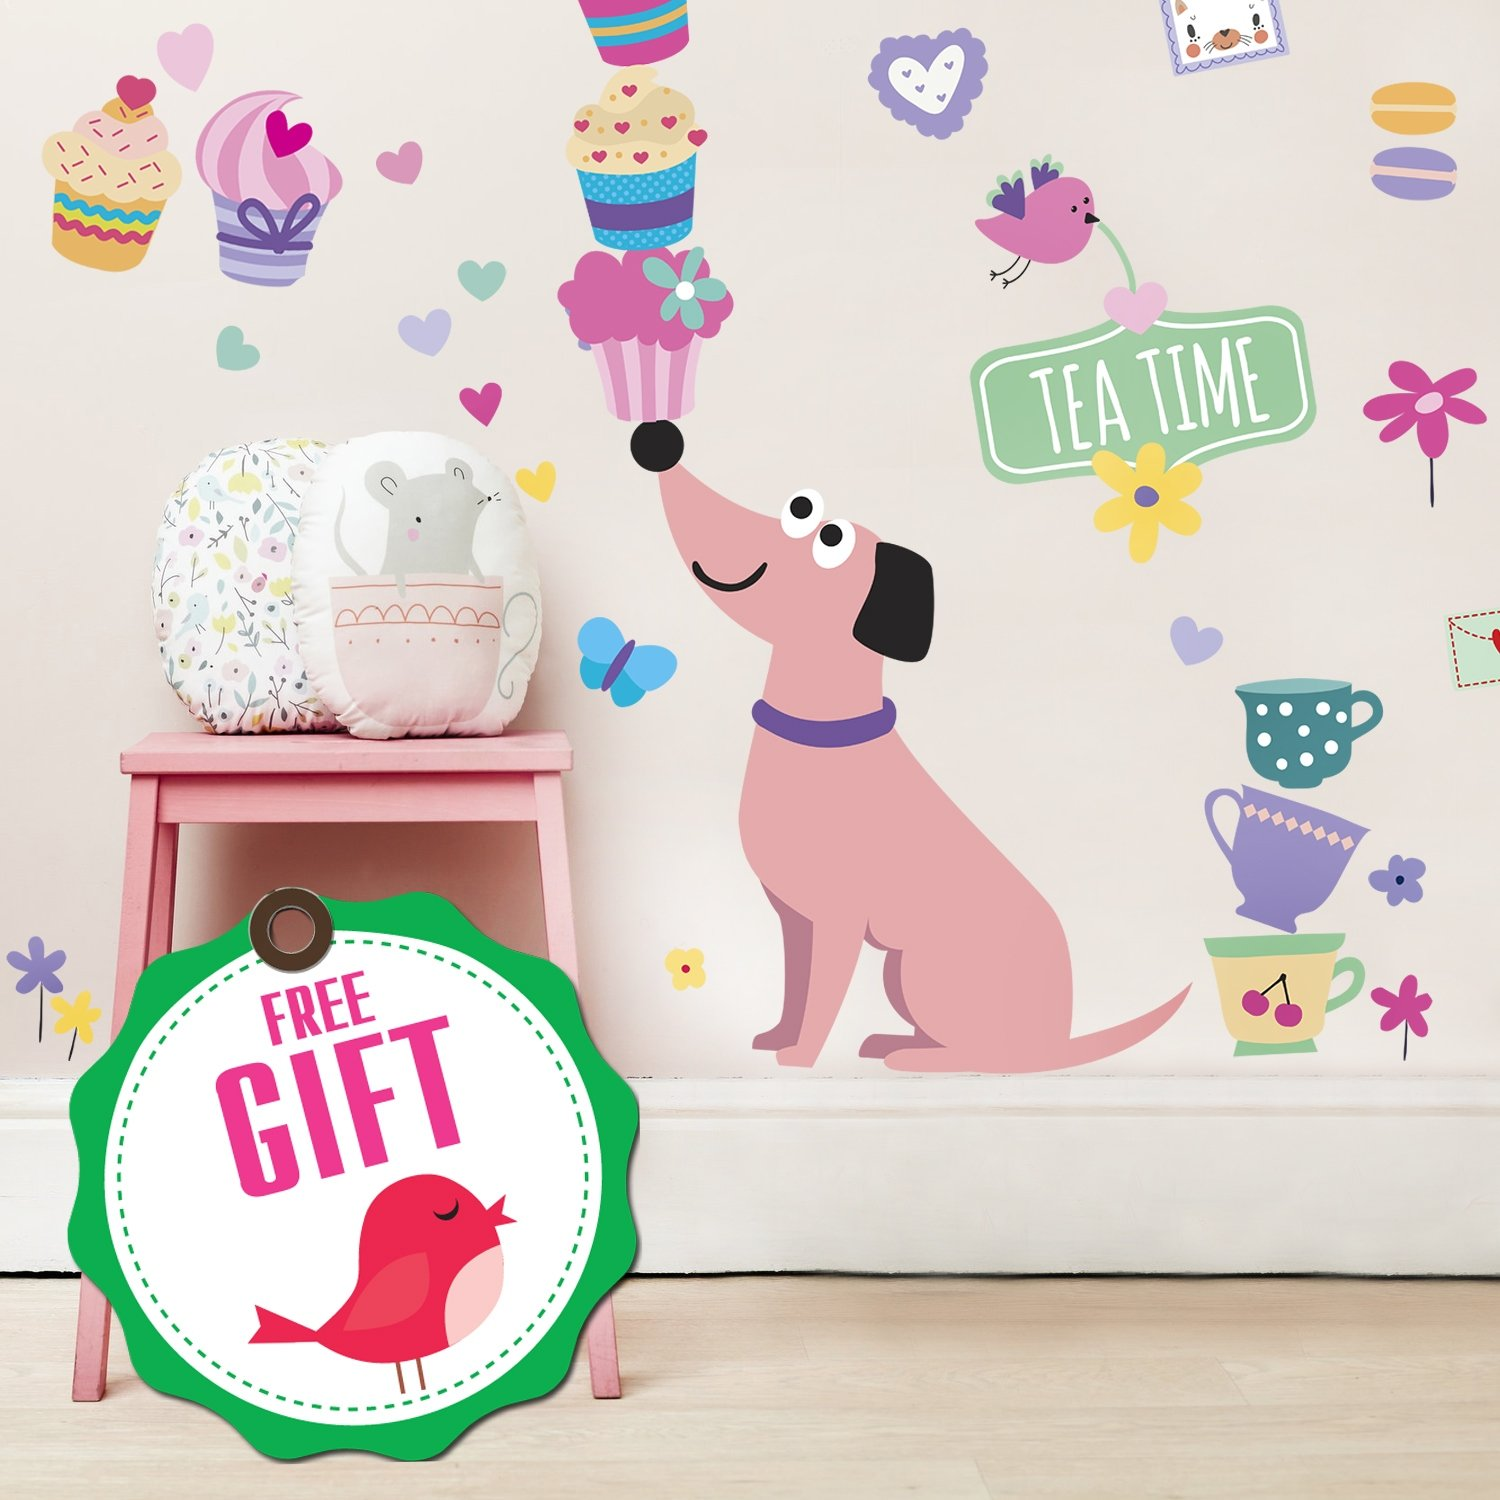 Dog Wall Decals for Girls - Cupcake Cute Pink Decor Stickers for Kids [>45 Art Baby Bedroom clings]